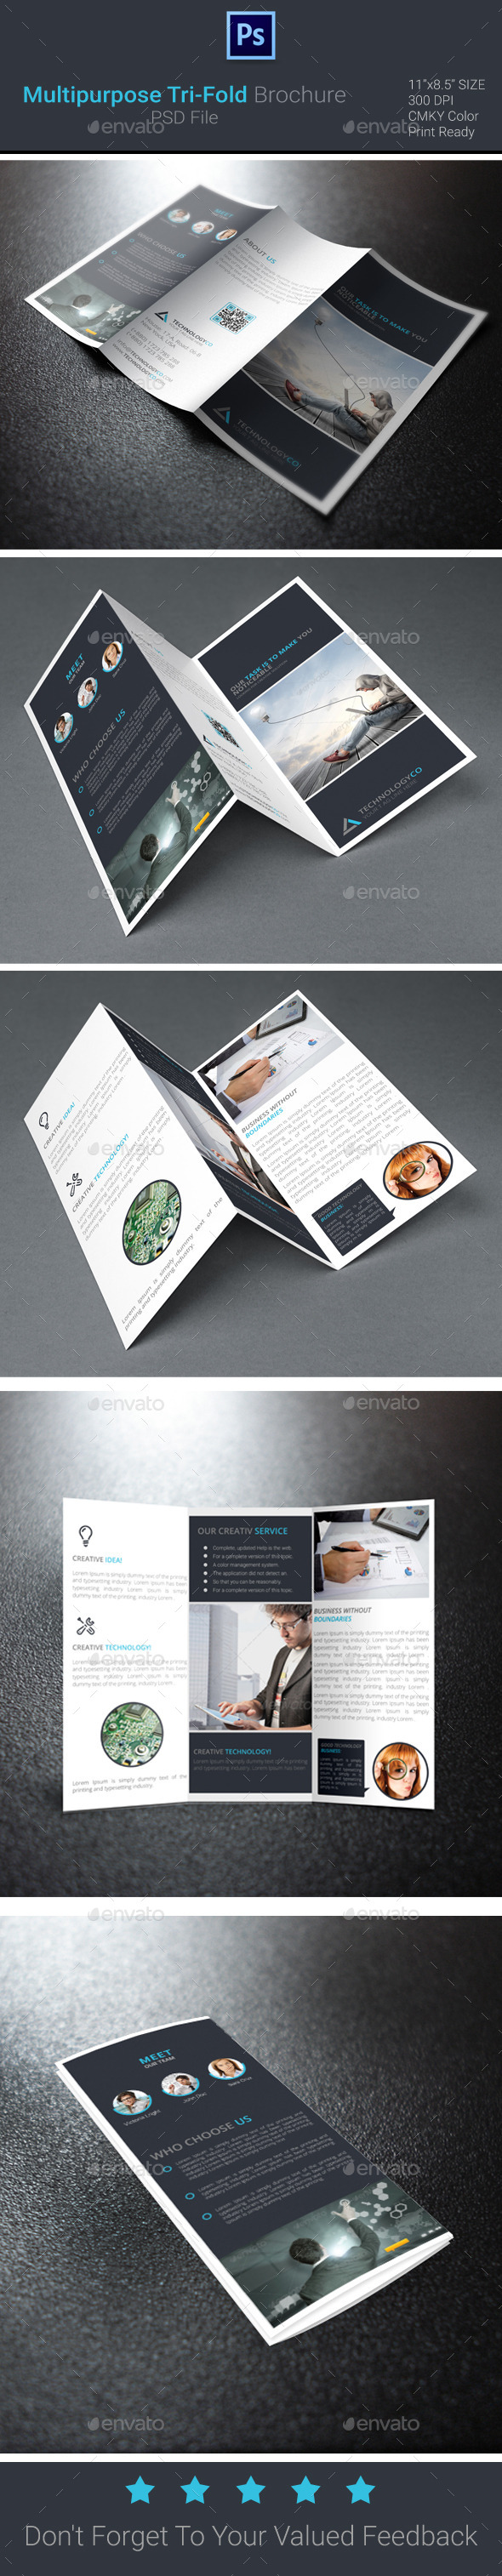 GraphicRiver Multipurpose Tri-Fold Brochure 9593912